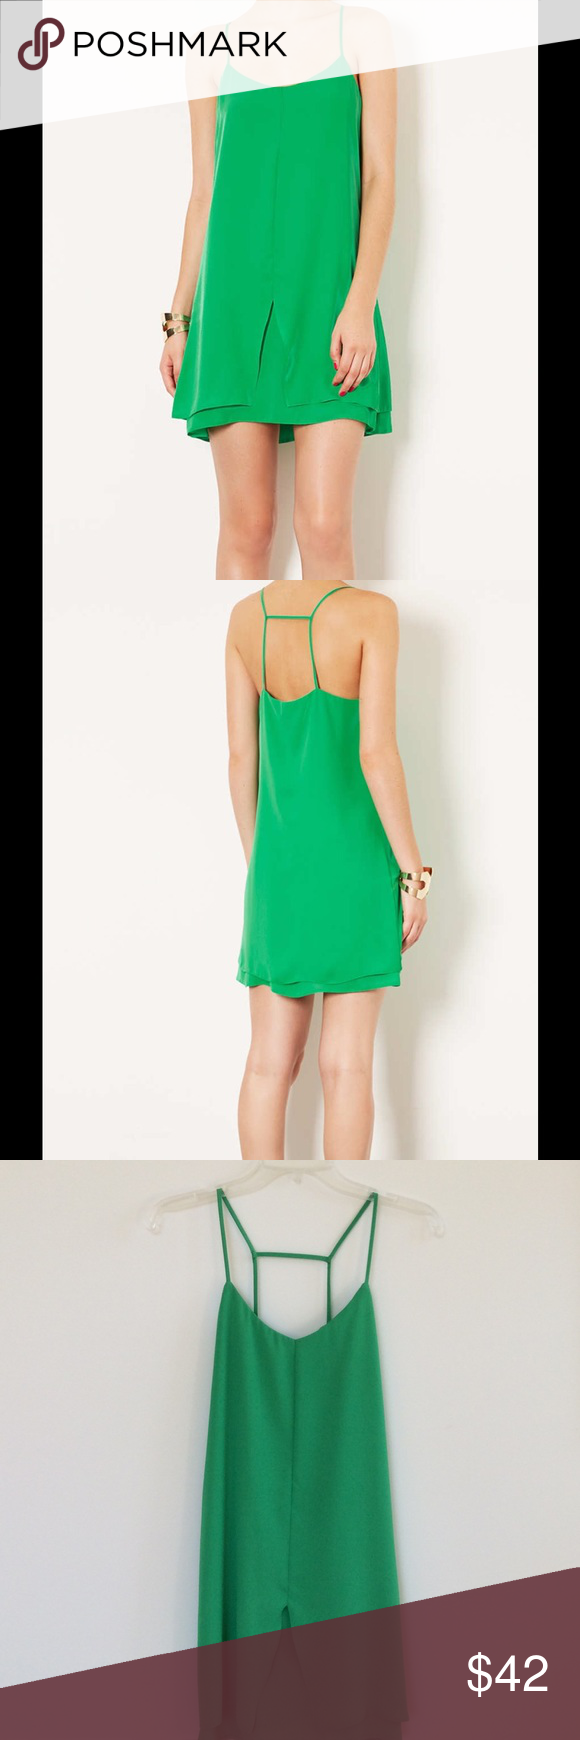 TOPSHOP STRAPPY SLIP DRESS💚 Beautiful layered slip dress in great condition💚WORN ONCE Topshop Dresses Mini